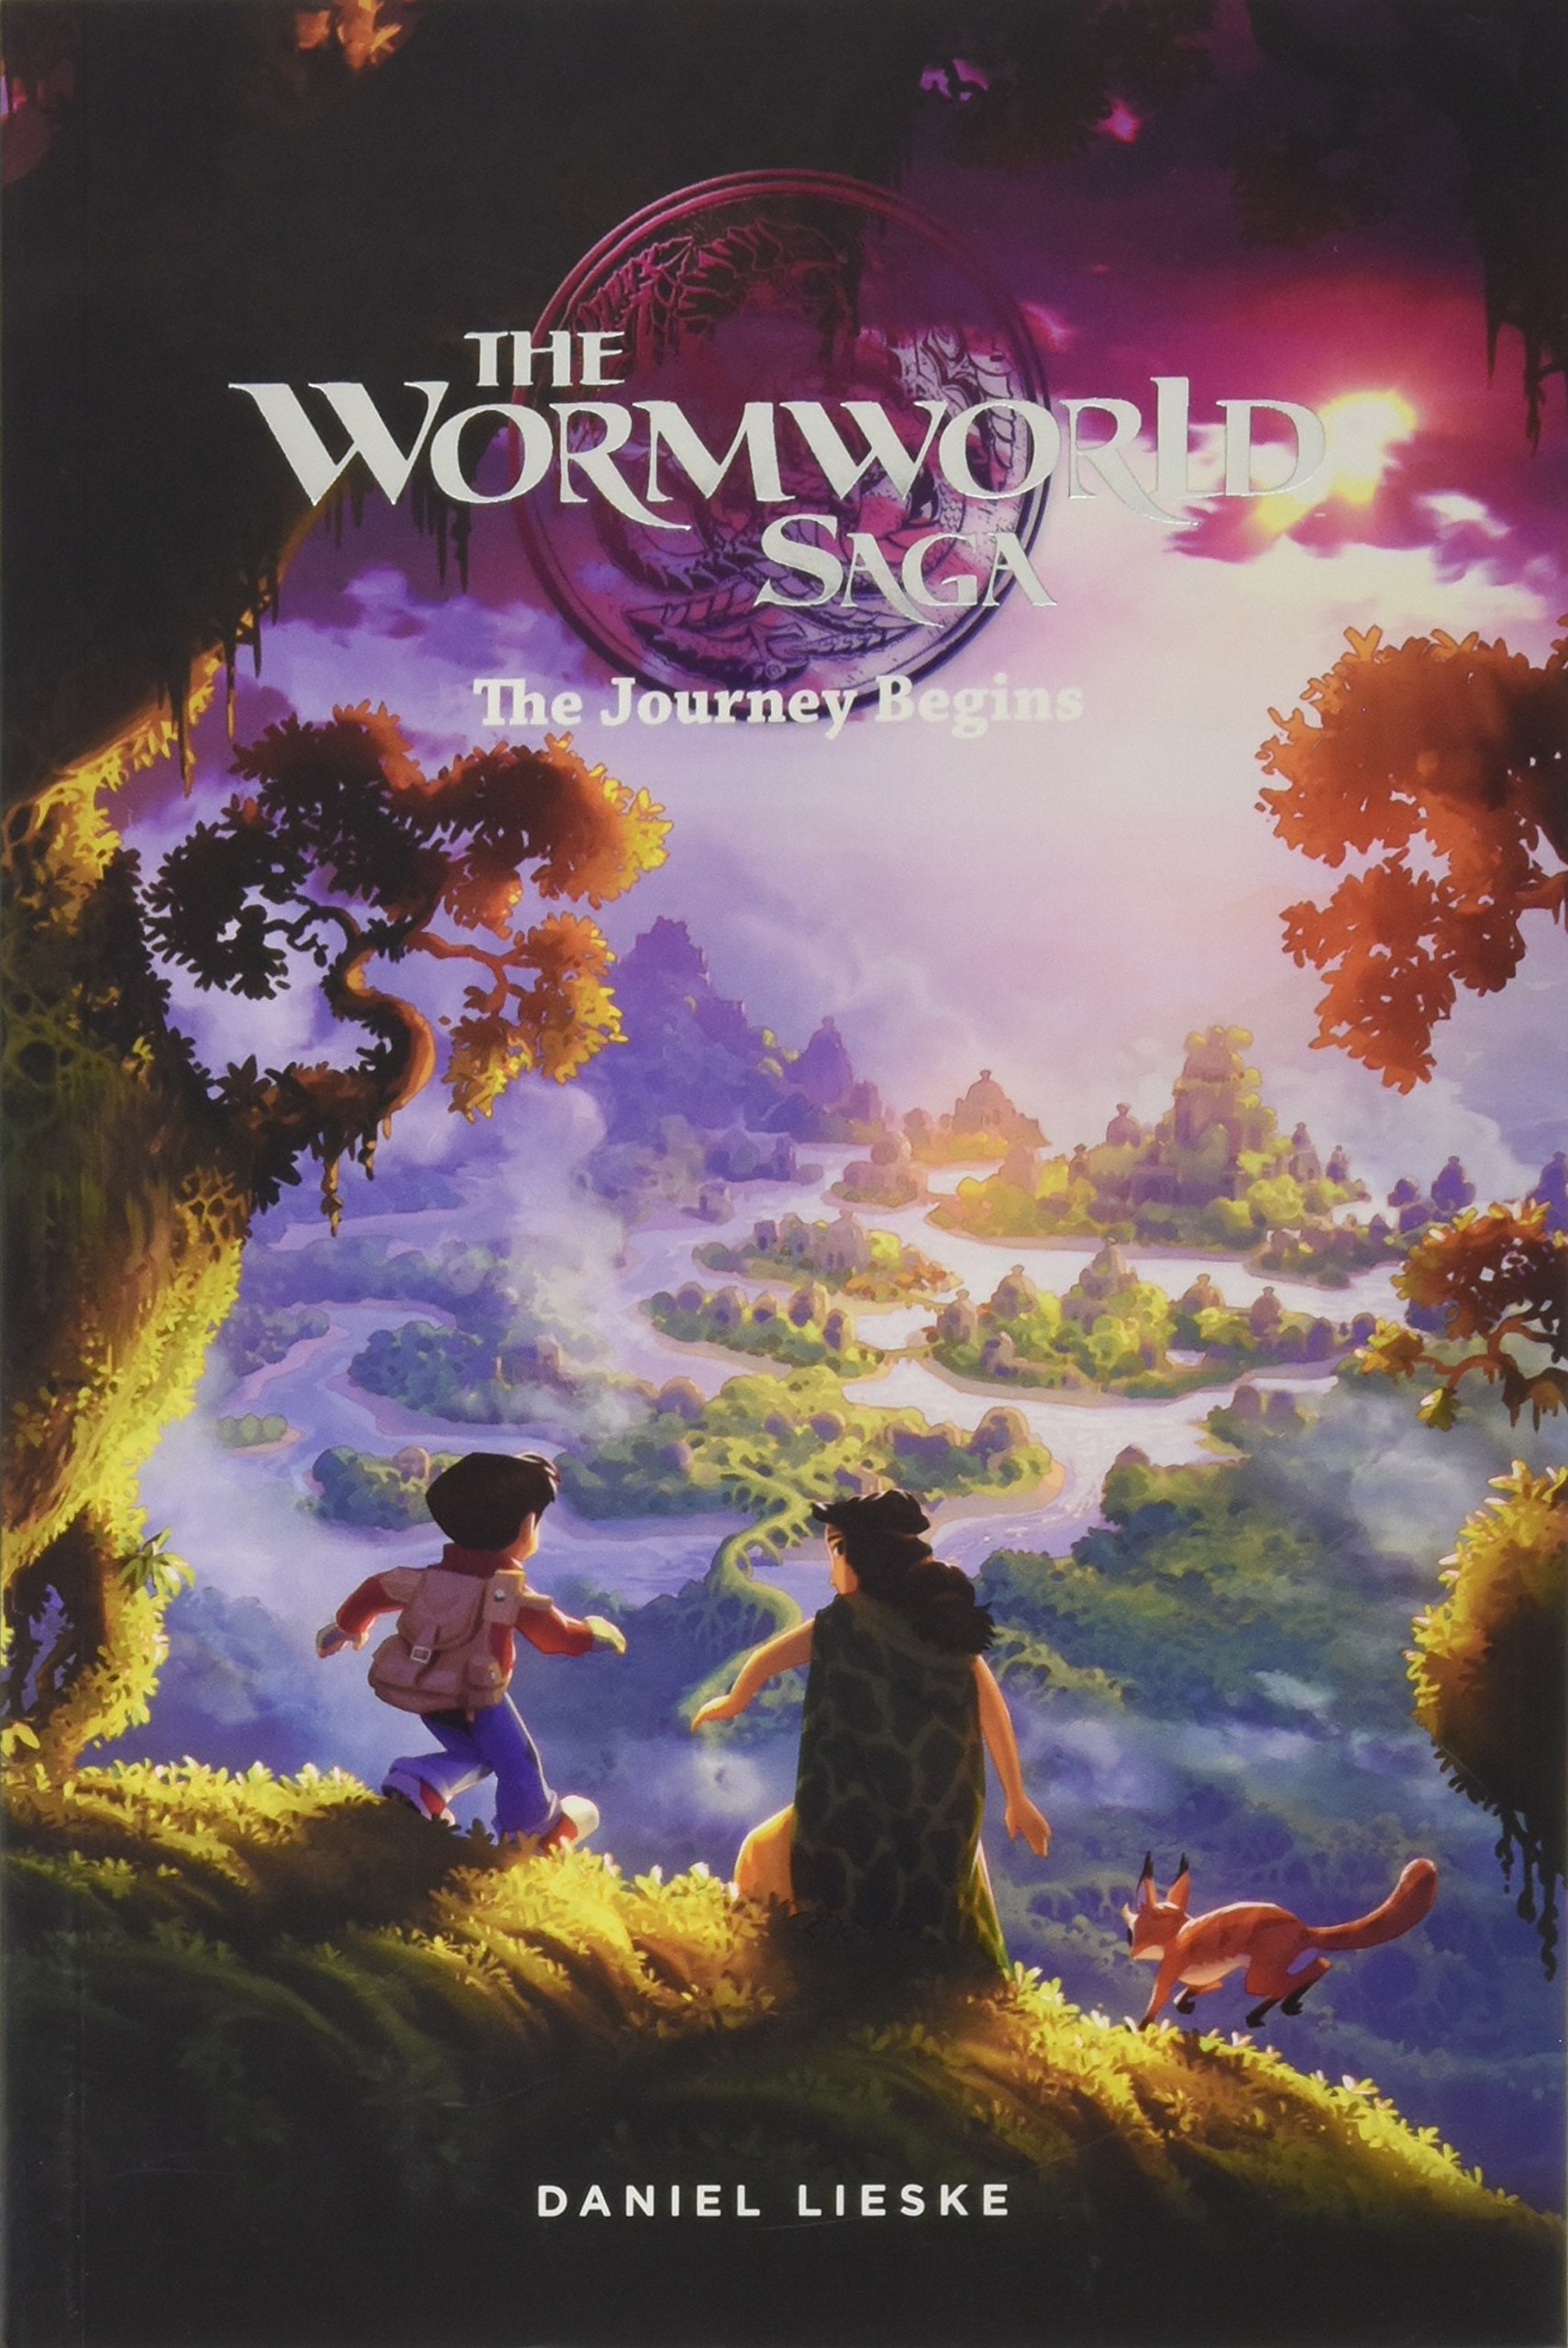 Amazon.com: The Wormworld Saga Vol. 1: The Journey Begins ...